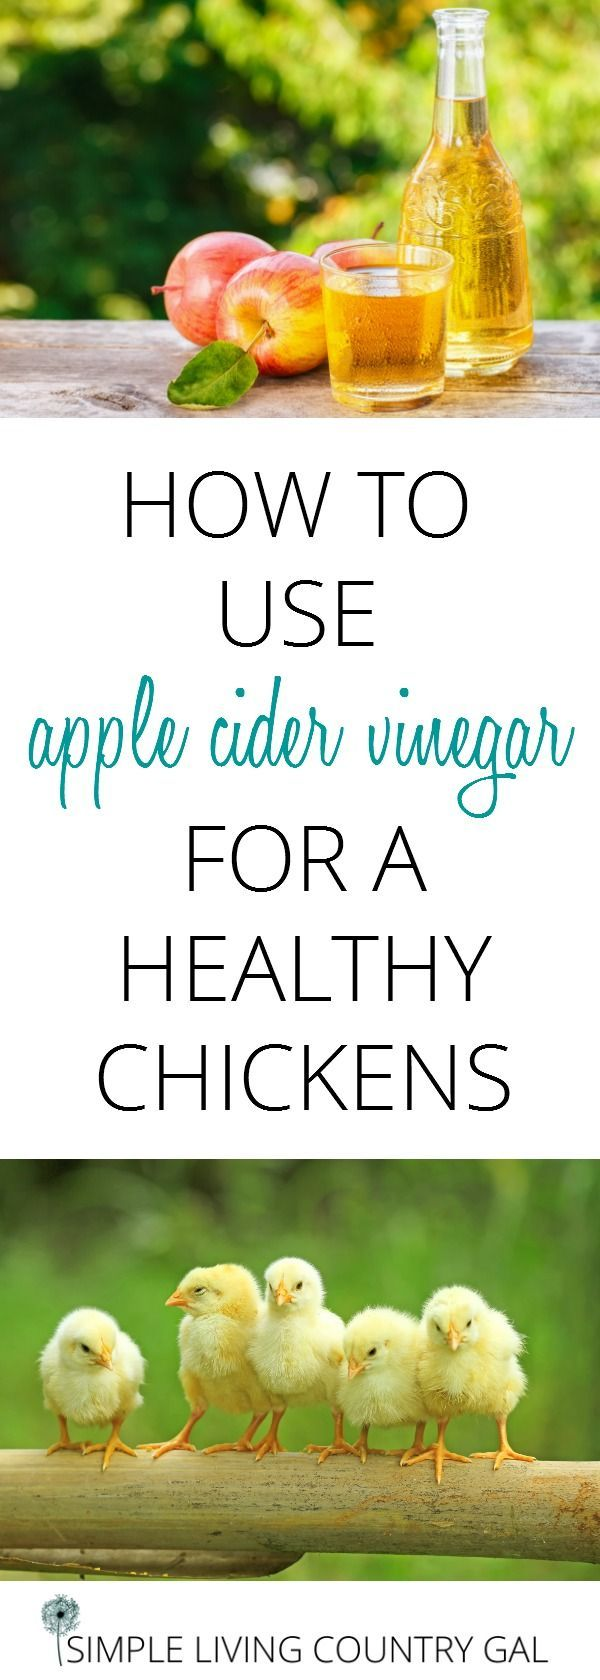 531 best raising chickens images on pinterest backyard chickens